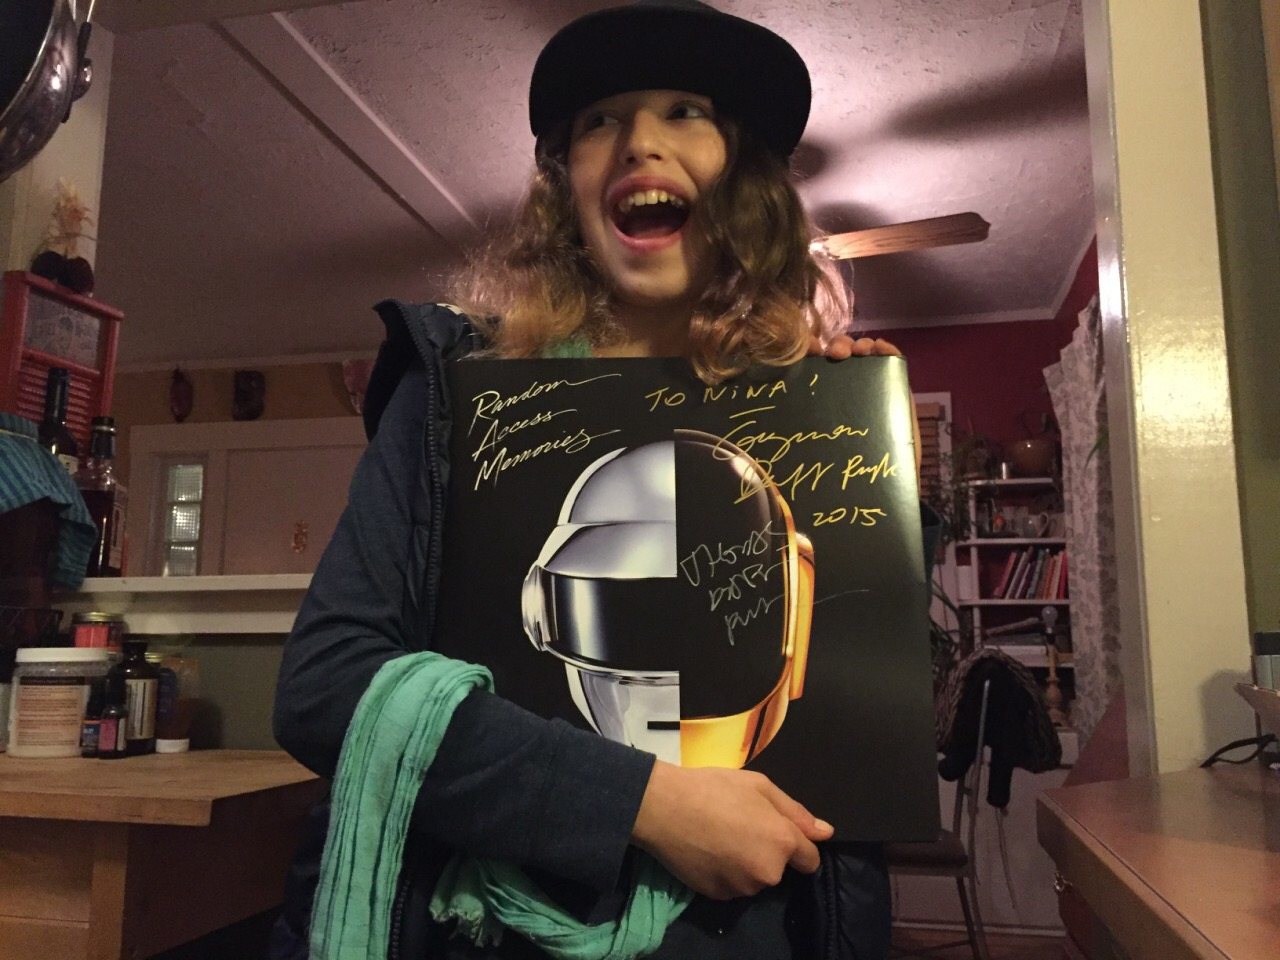 niece with signed vinyl of Daft Punk